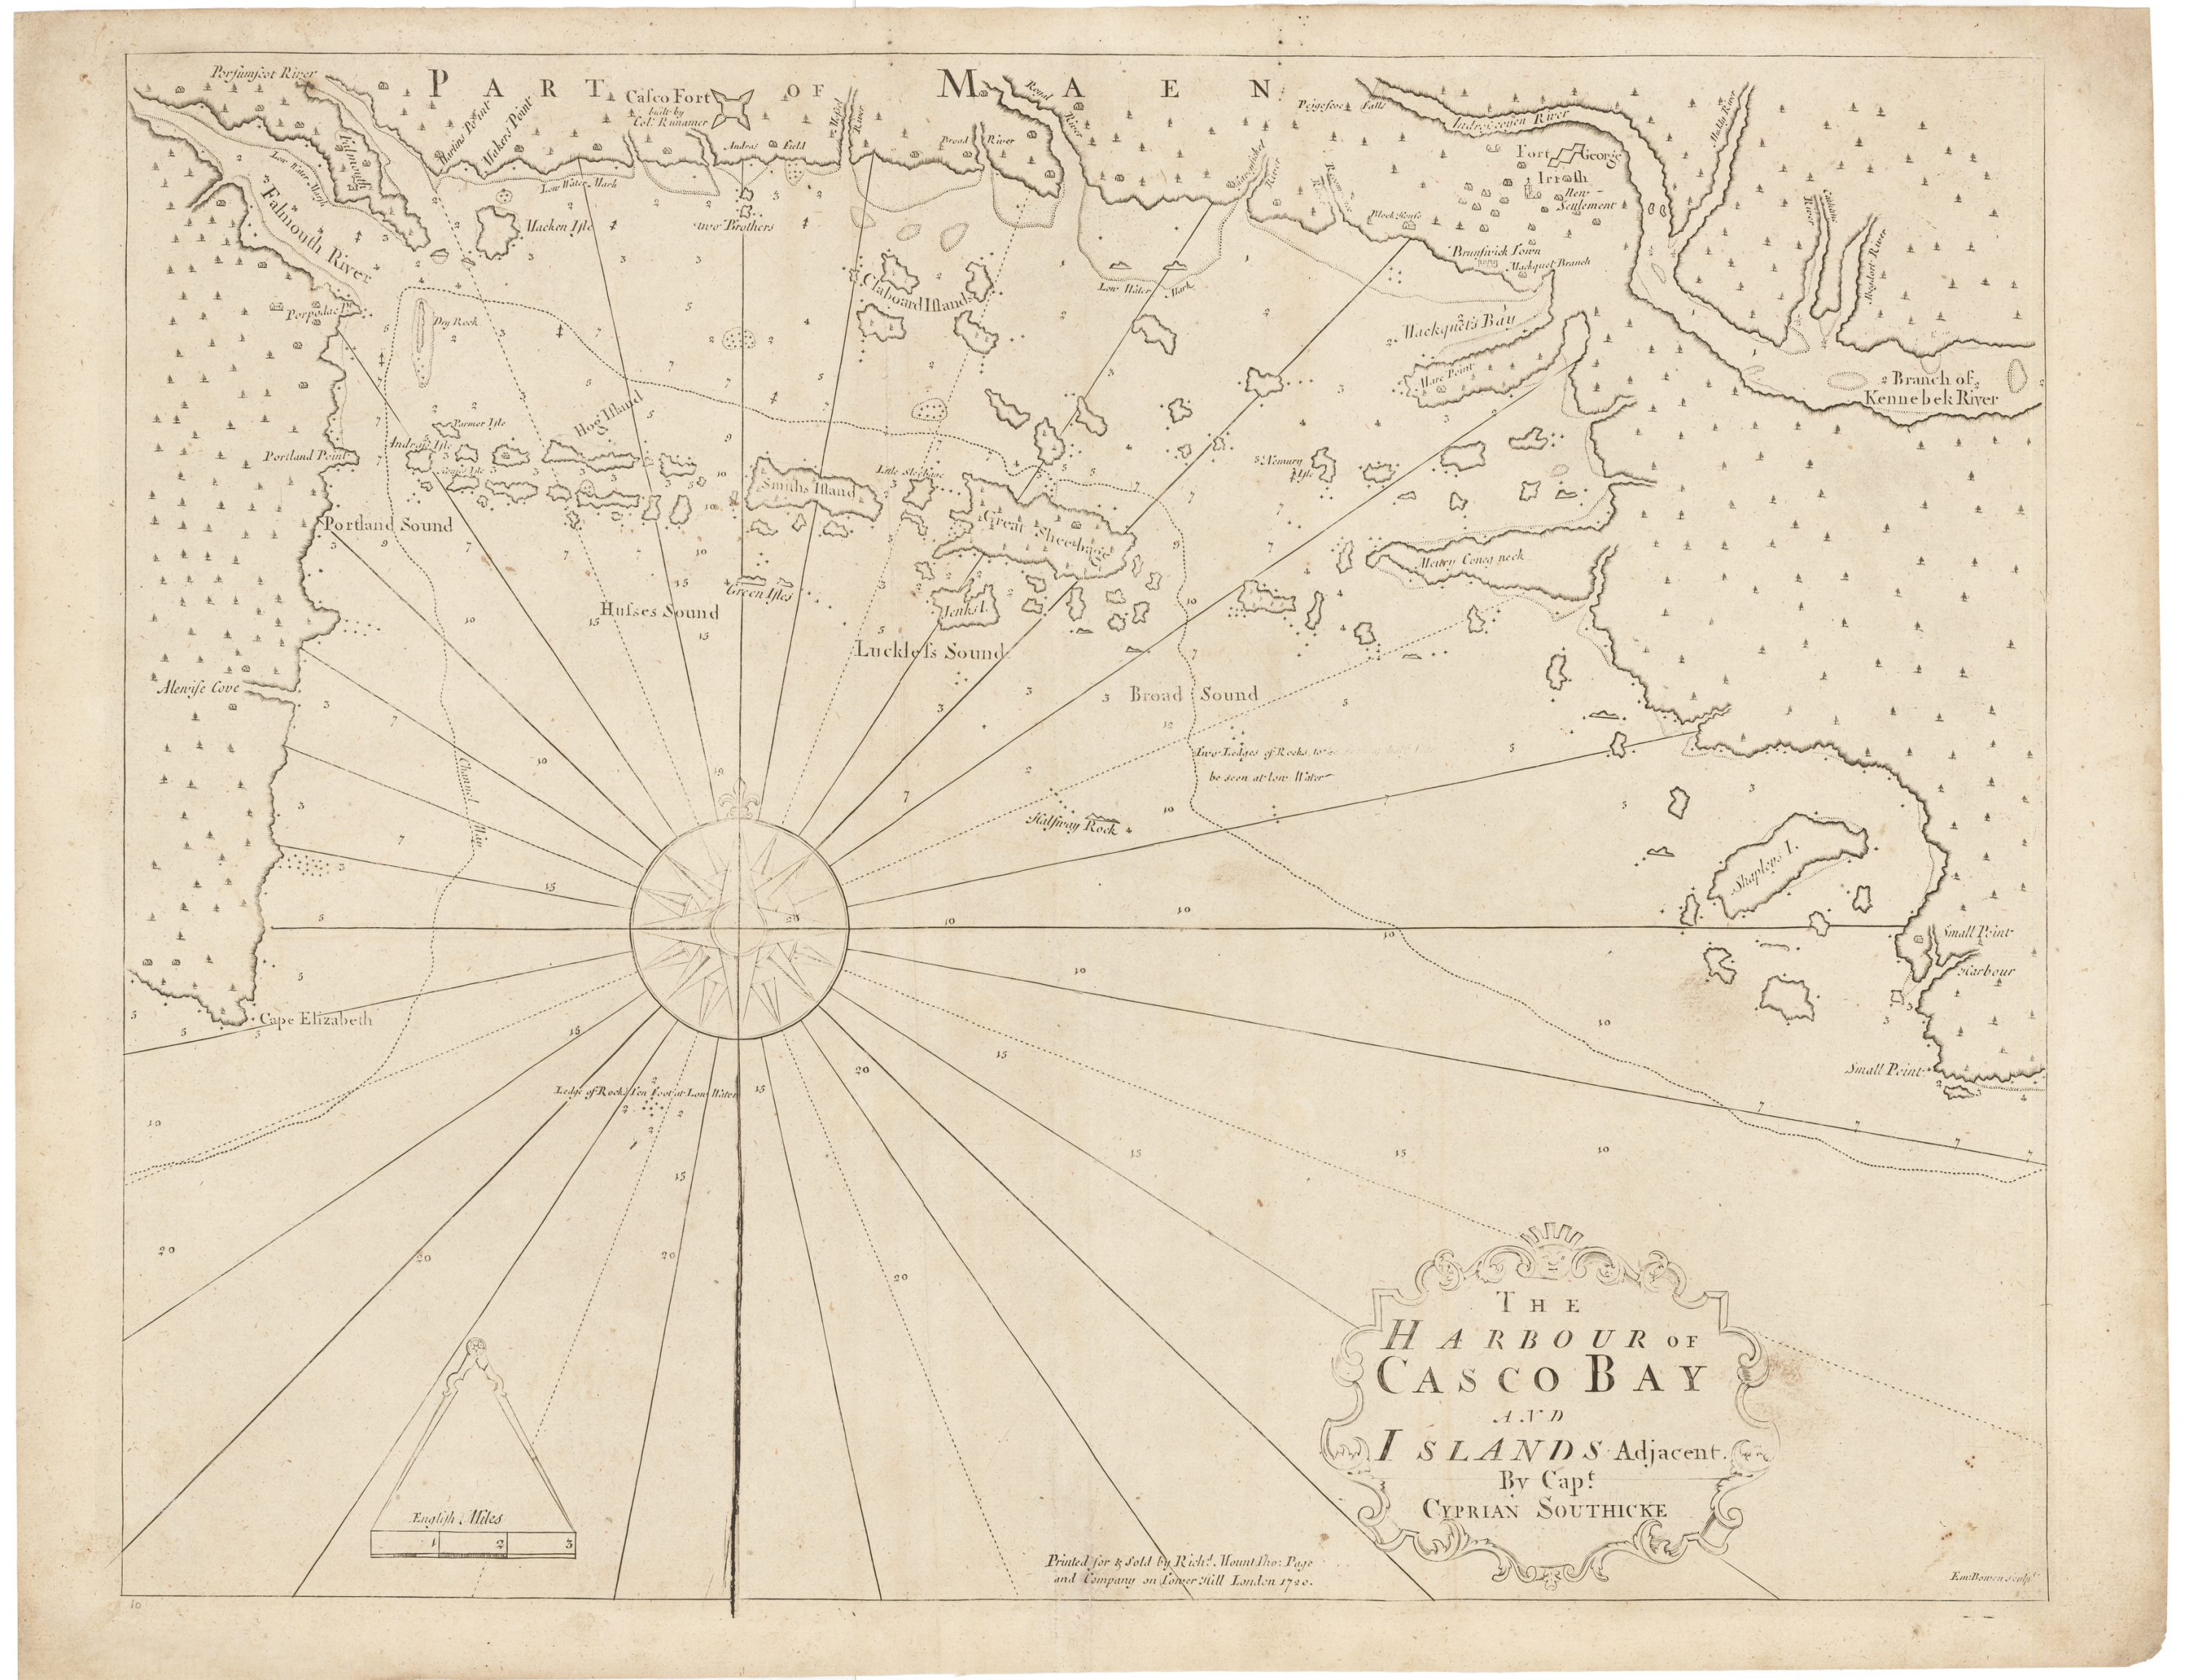 A casco bay first by cyprian southack rare antique maps a casco bay first by cyprian southack freerunsca Image collections